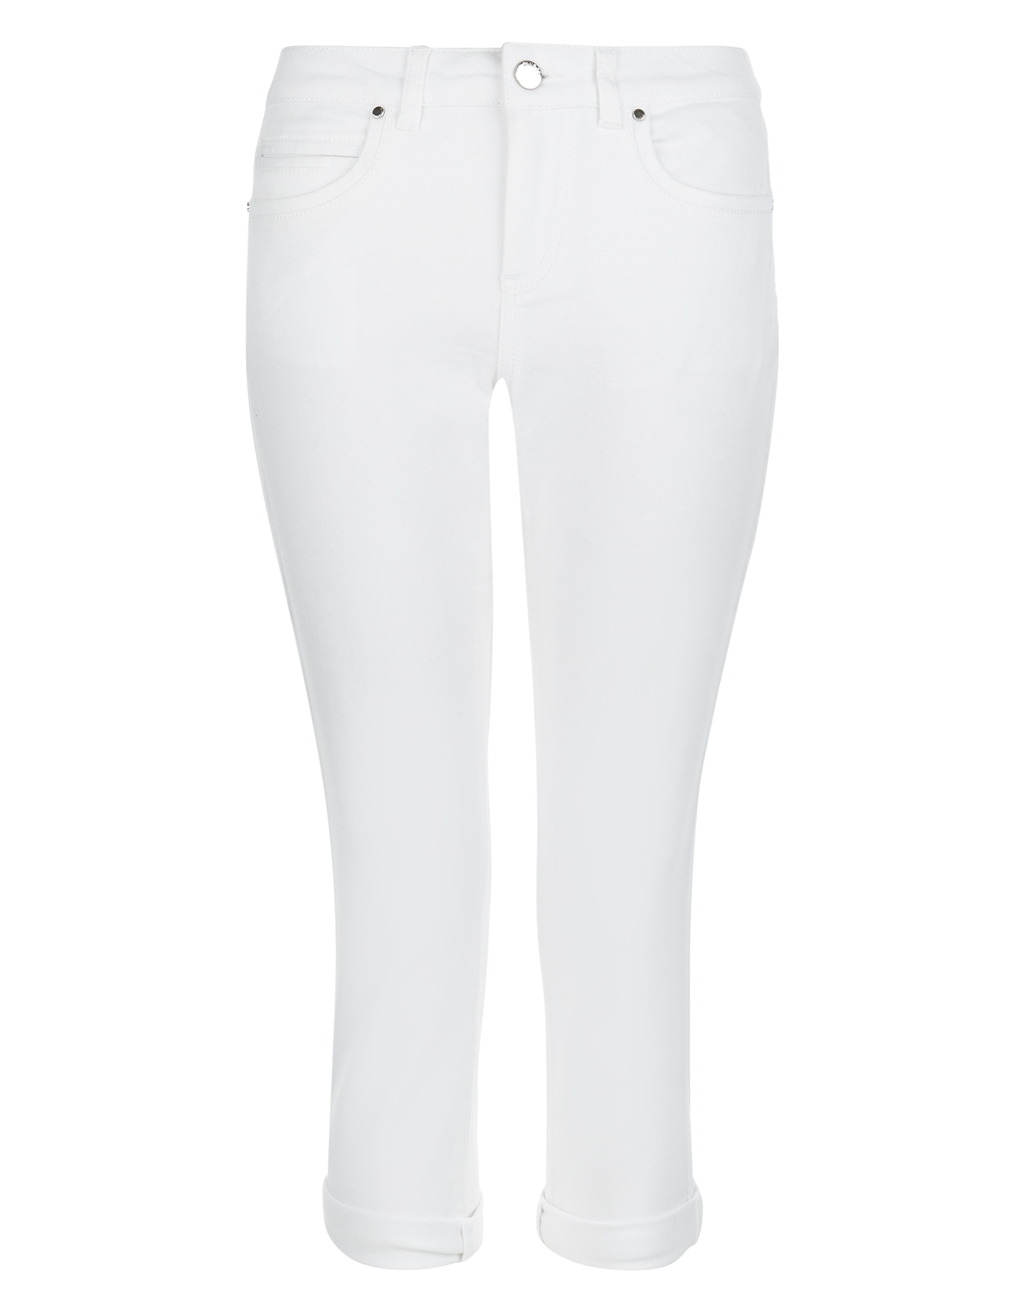 Isadora Capri Jean - style: skinny leg; pattern: plain; pocket detail: traditional 5 pocket; waist: mid/regular rise; predominant colour: white; occasions: casual; length: calf length; fibres: cotton - stretch; texture group: denim; pattern type: fabric; season: s/s 2016